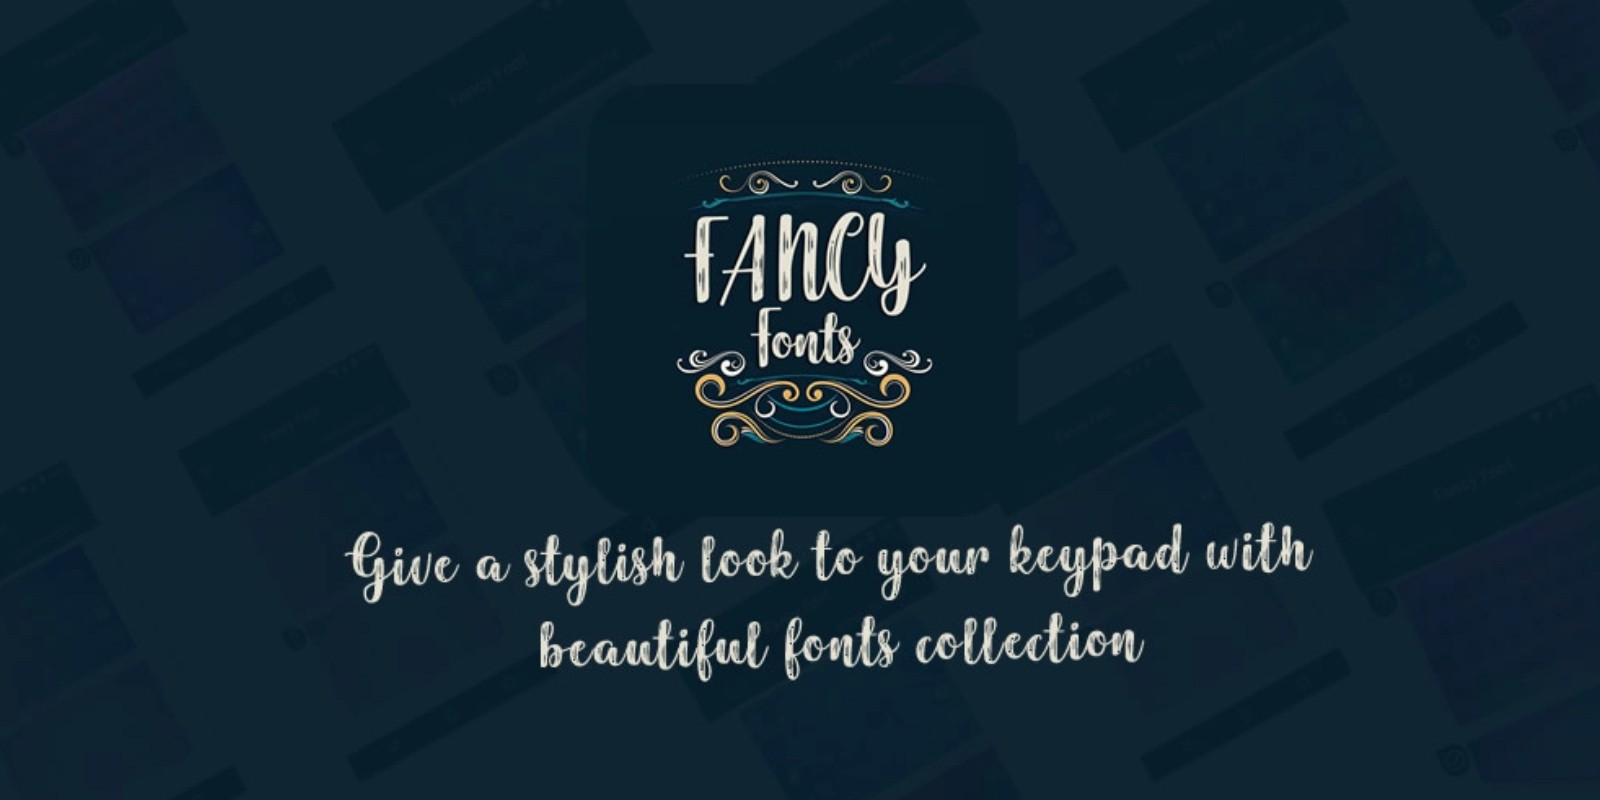 Fancy Stylish Fonts: iOS App Source Code